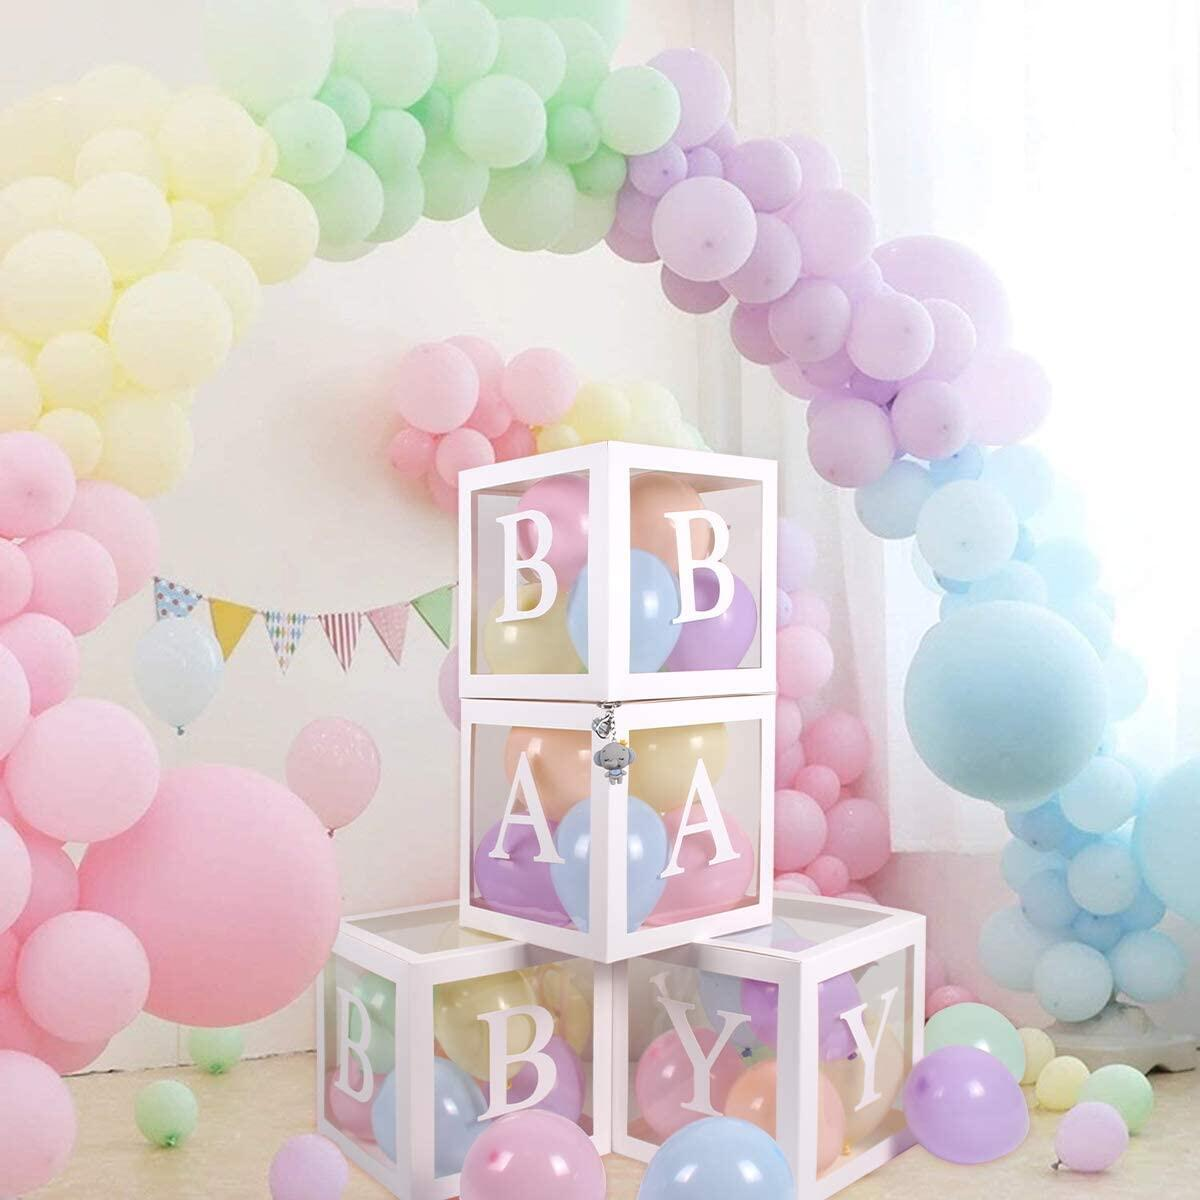 BearBox Baby Shower Balloon Box Kit 45 Piece Box Kit with Free Elephant Charm | Gender Reveal Party Decoration Photo Shoot Prop